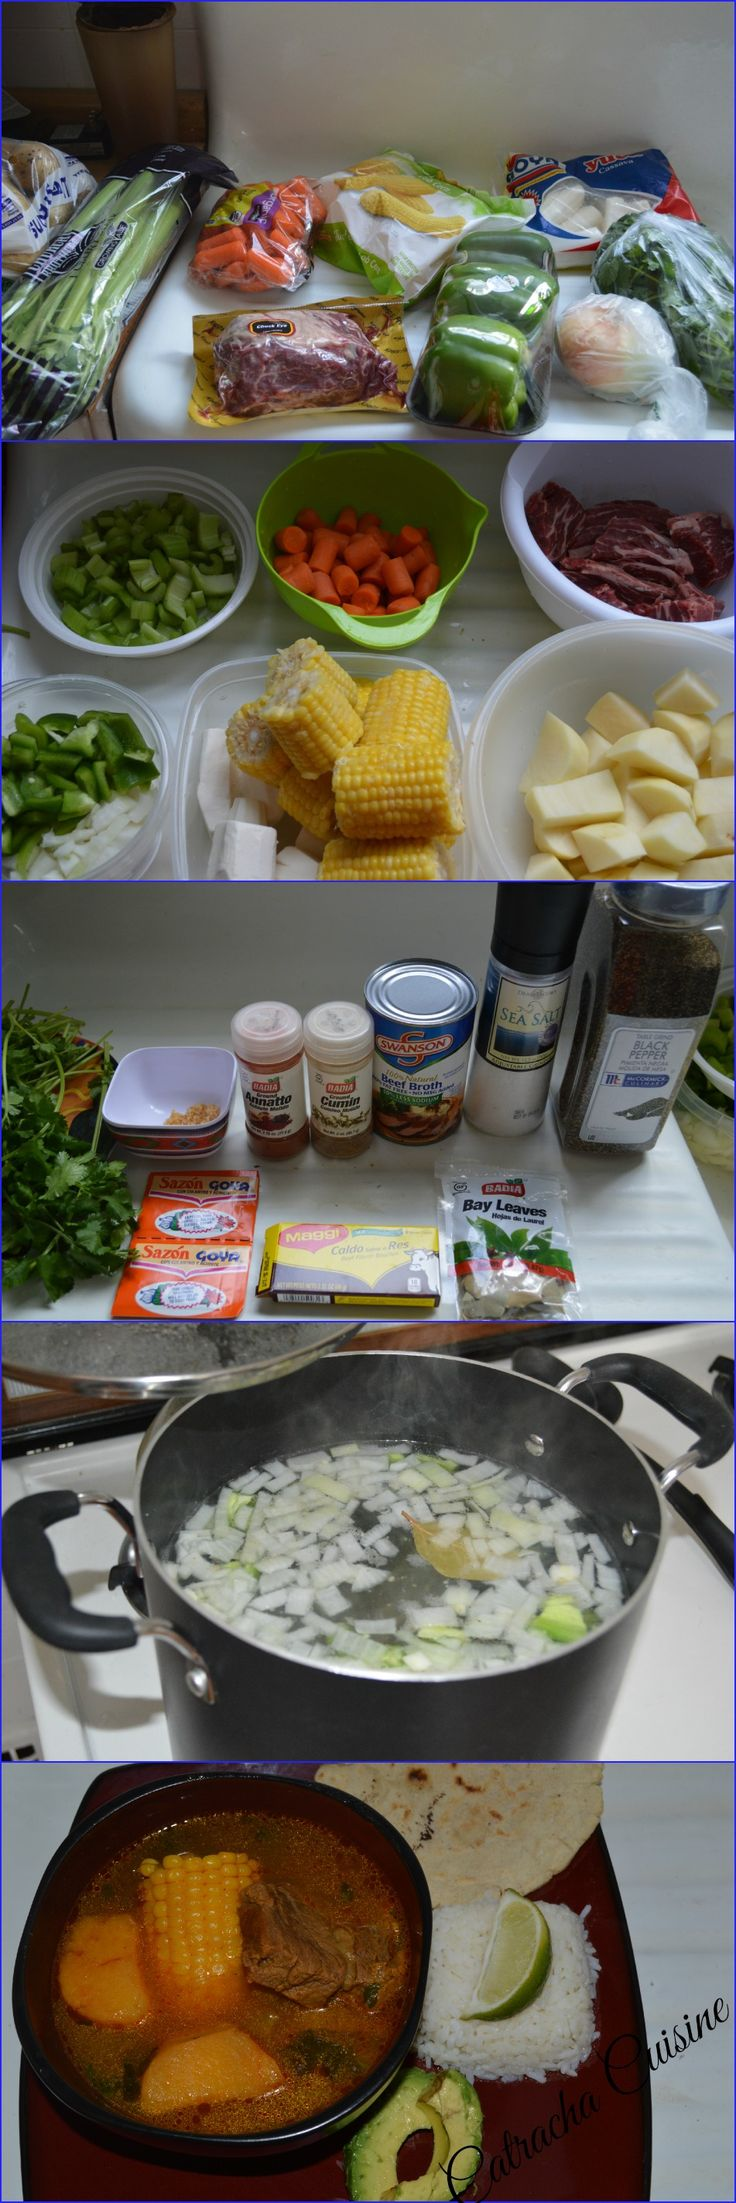 SOPA DE RES (Honduran Beef Soup) INGREDIENTS 2 lbs of Chuck roast 4 cups of water 3  cloves garlic 1 Onion 1 Bunch fresh Cilantro 1 lbs Carrots 1 lbs potatoes  1 lbs of YUCA 2 Celery ribs  2 lbs Corn  1 can beef broth 2 TBsp Annatto 2 Tsp Cumin  2 season goya 1 bay leaves 1 Caldo de res  PREPARATION  saucepan place the water along with the meat, garlic, onion, salt, bay leaves and cilantro. Cook for  2 hours or until meat tender. add Vegetables and the rest of  spices.